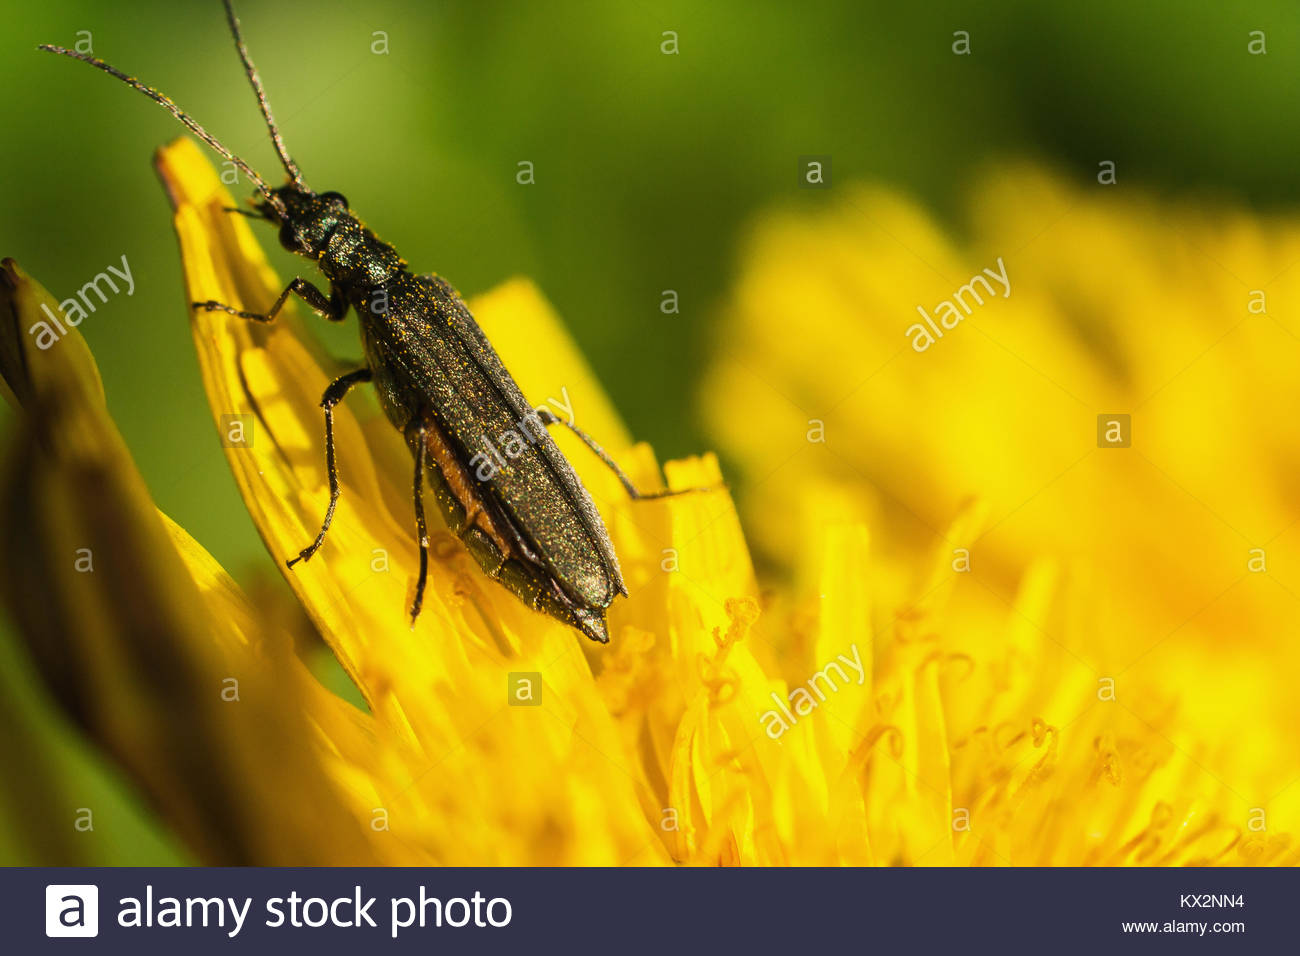 Large Black And Yellow Bug Stock Photos & Large Black And